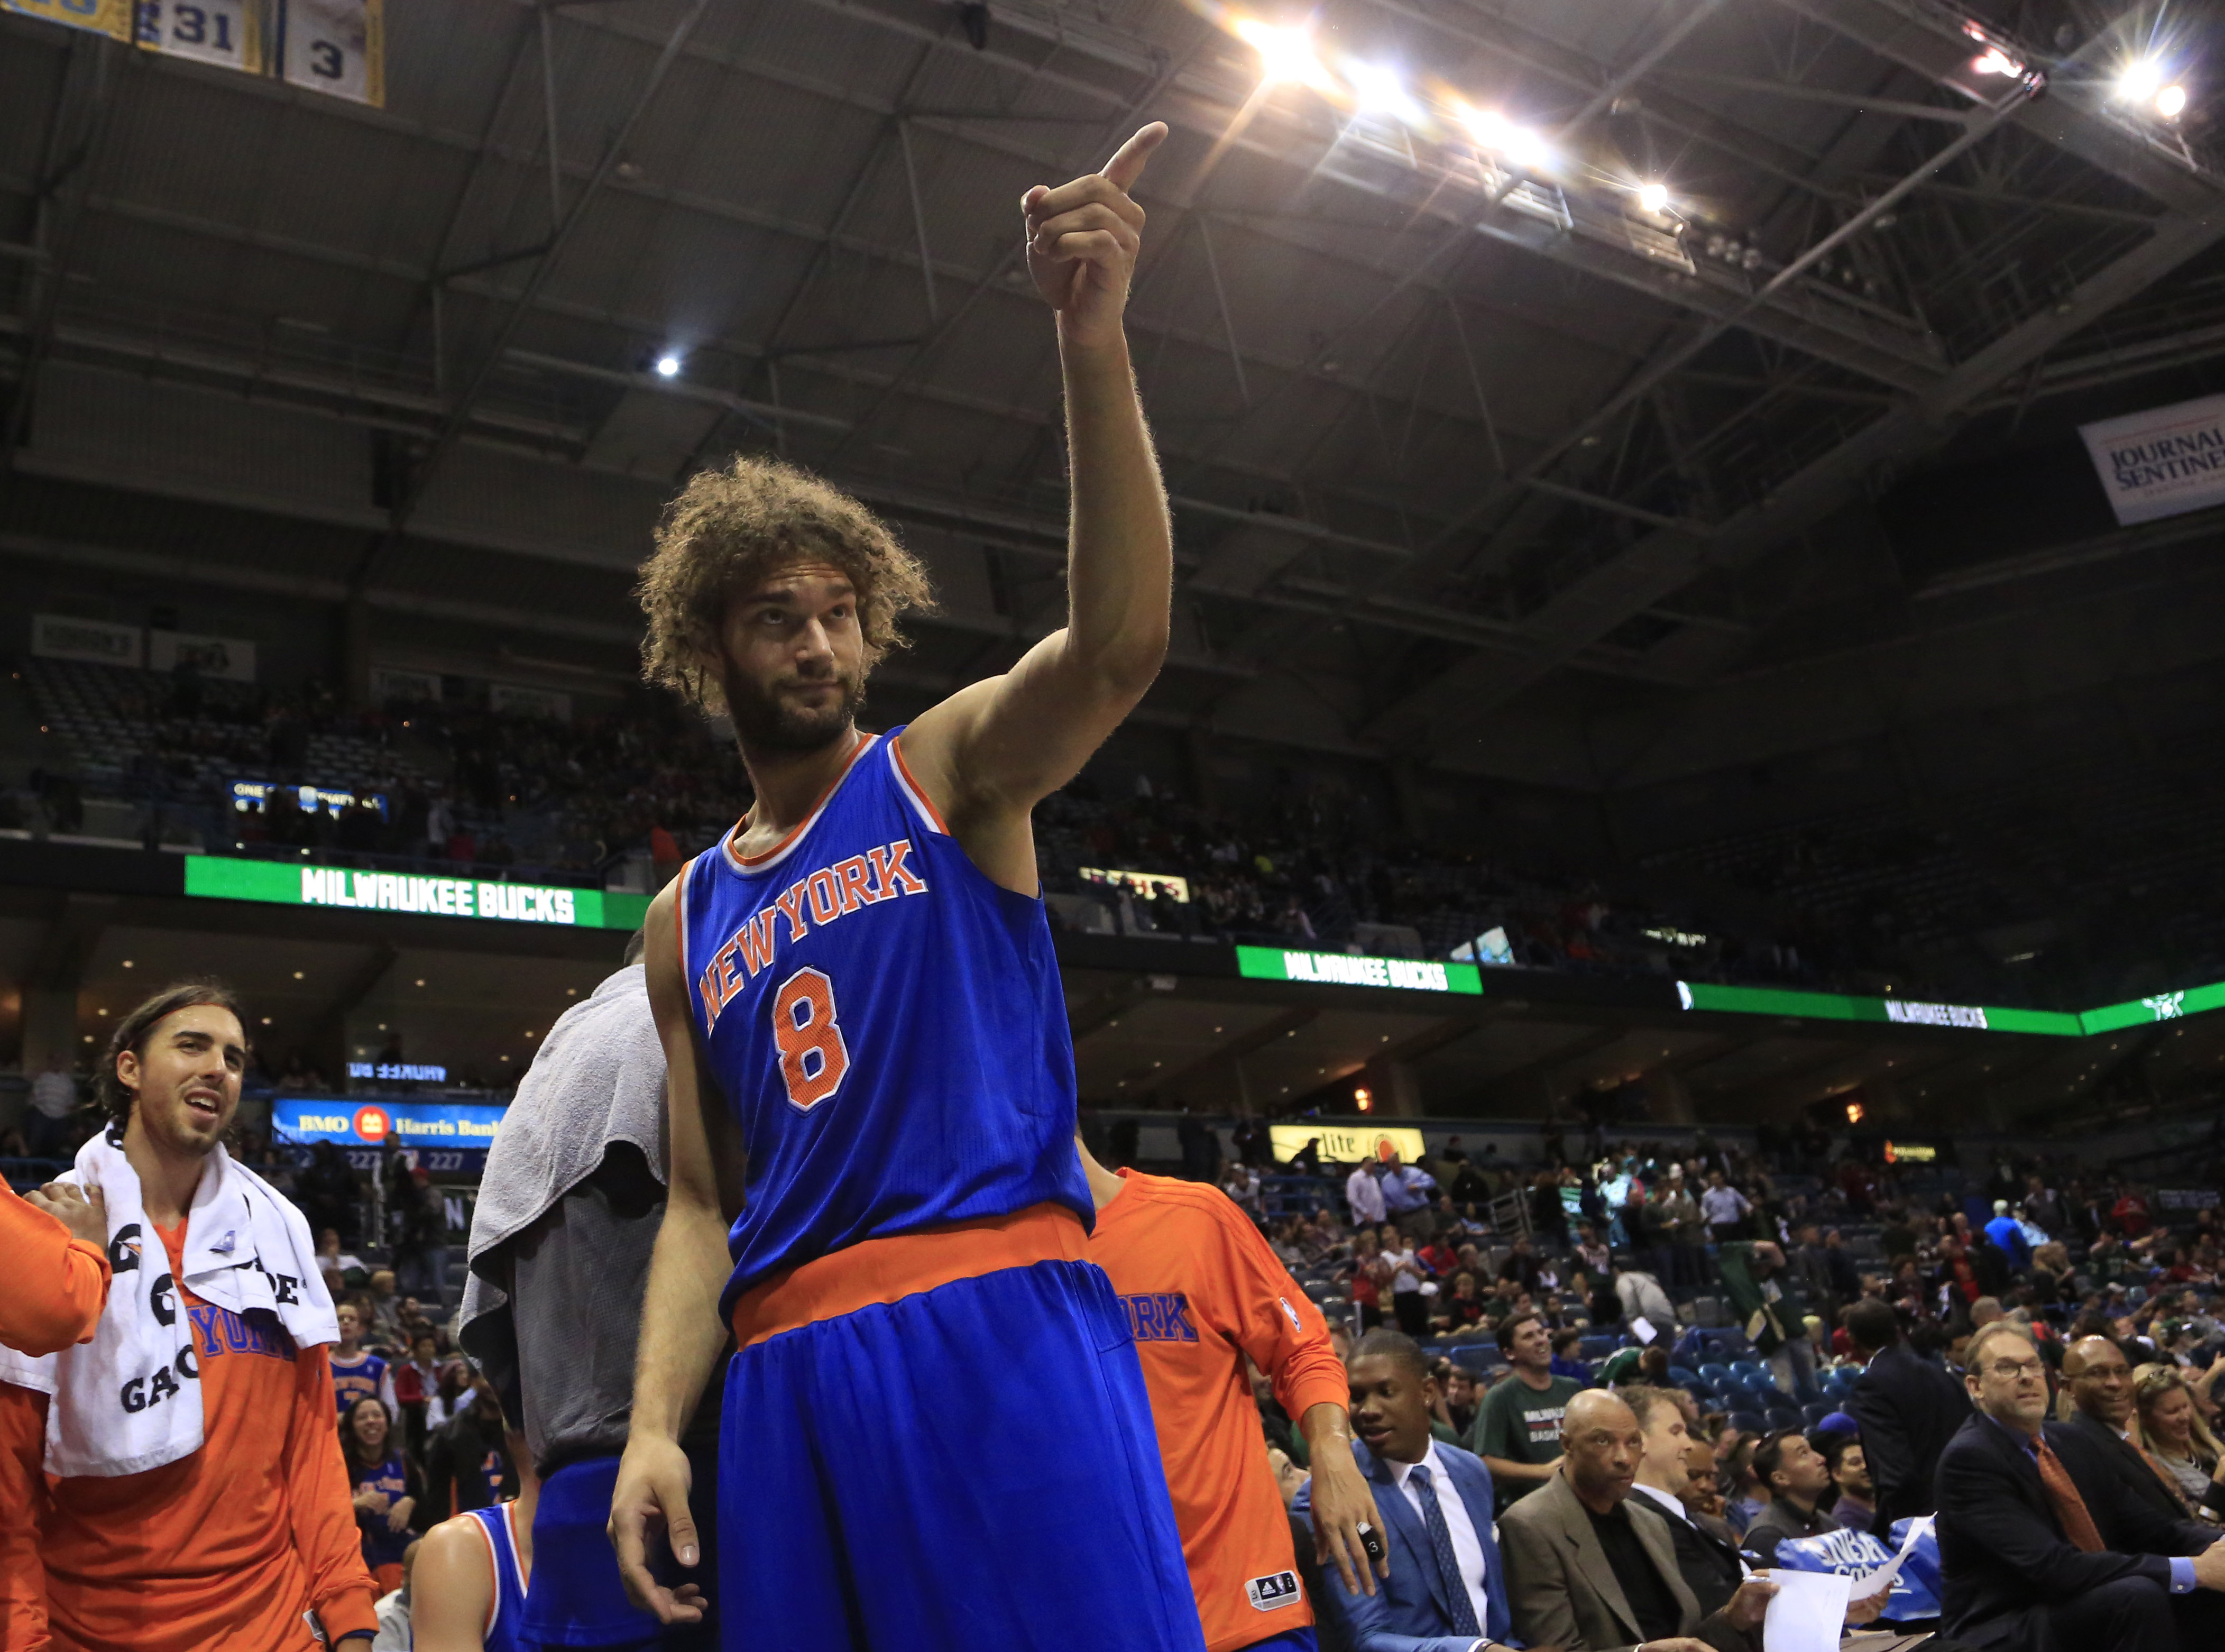 New York Knicks center Robin Lopez points at Bango the Milwaukee Bucks mascot at the end of an NBA basketball game Wednesday, Oct. 28, 2015, in Milwaukee. The Knicks defeated the Bucks 122-97. (AP Photo/Darren Hauck)